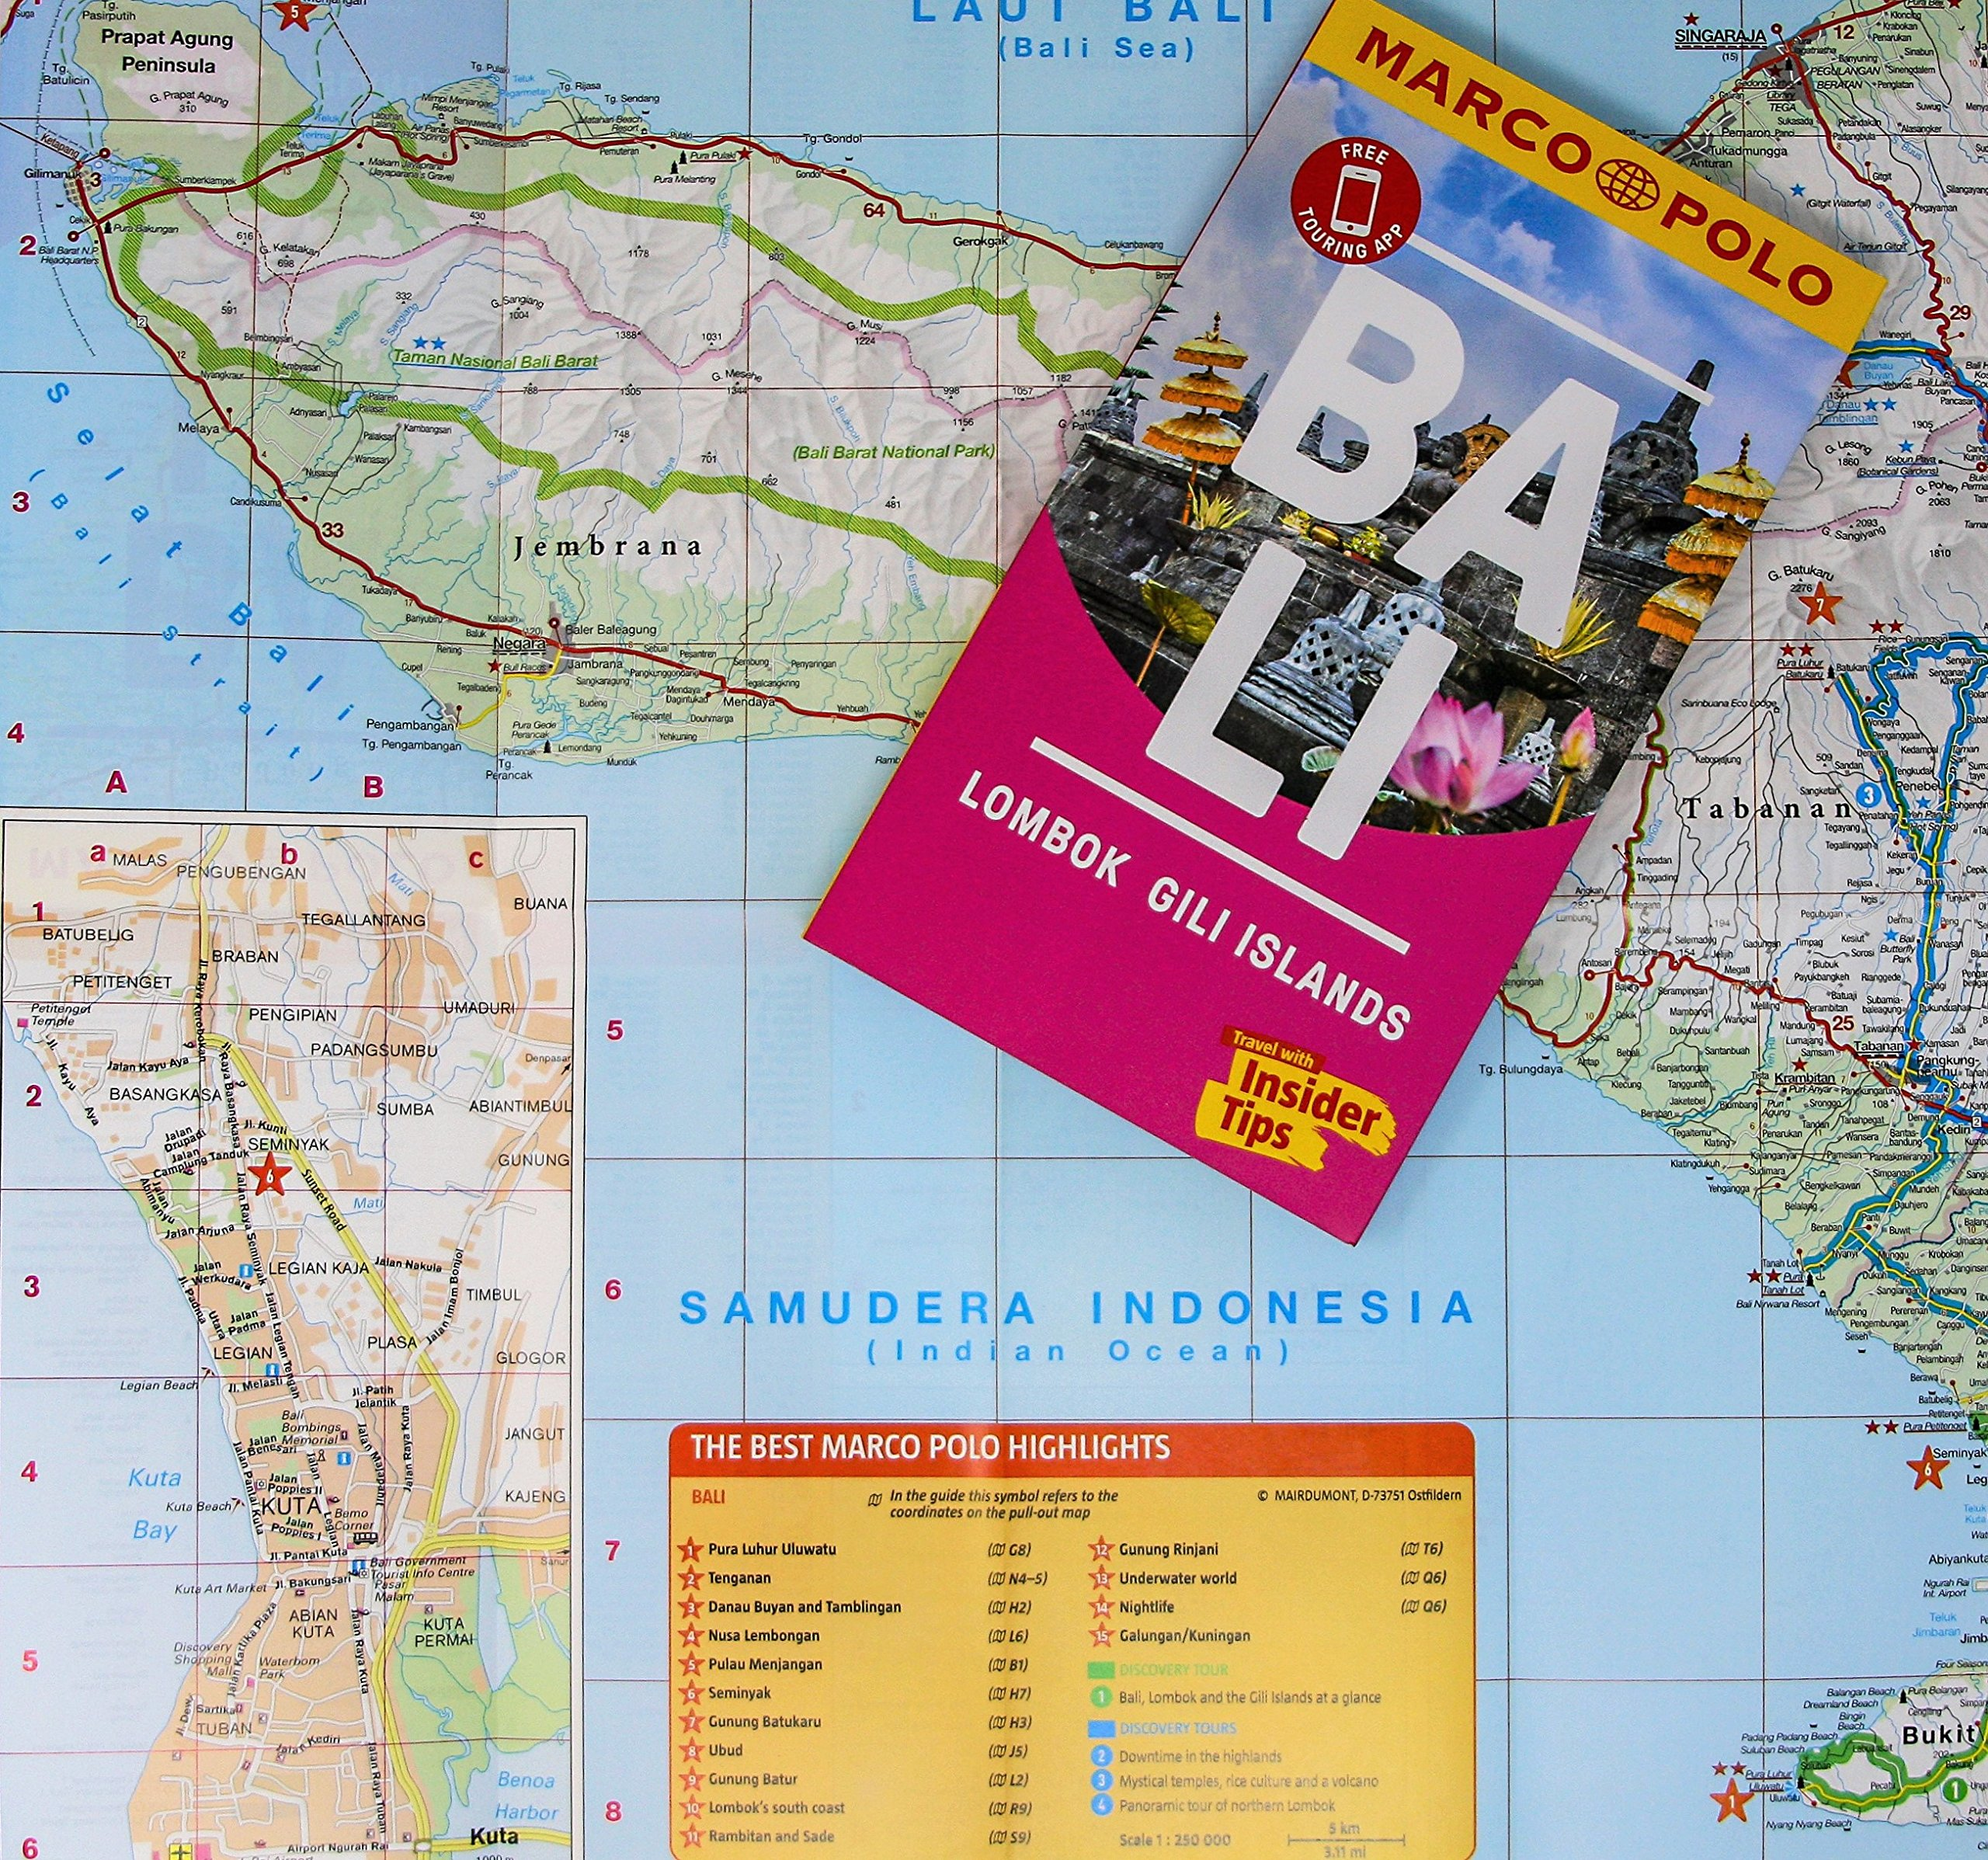 Bali Marco Polo Pocket Travel Guide 2018 With Pull Out Map Voucher Trip Menjangan Barat Guides 9783829707619 Books